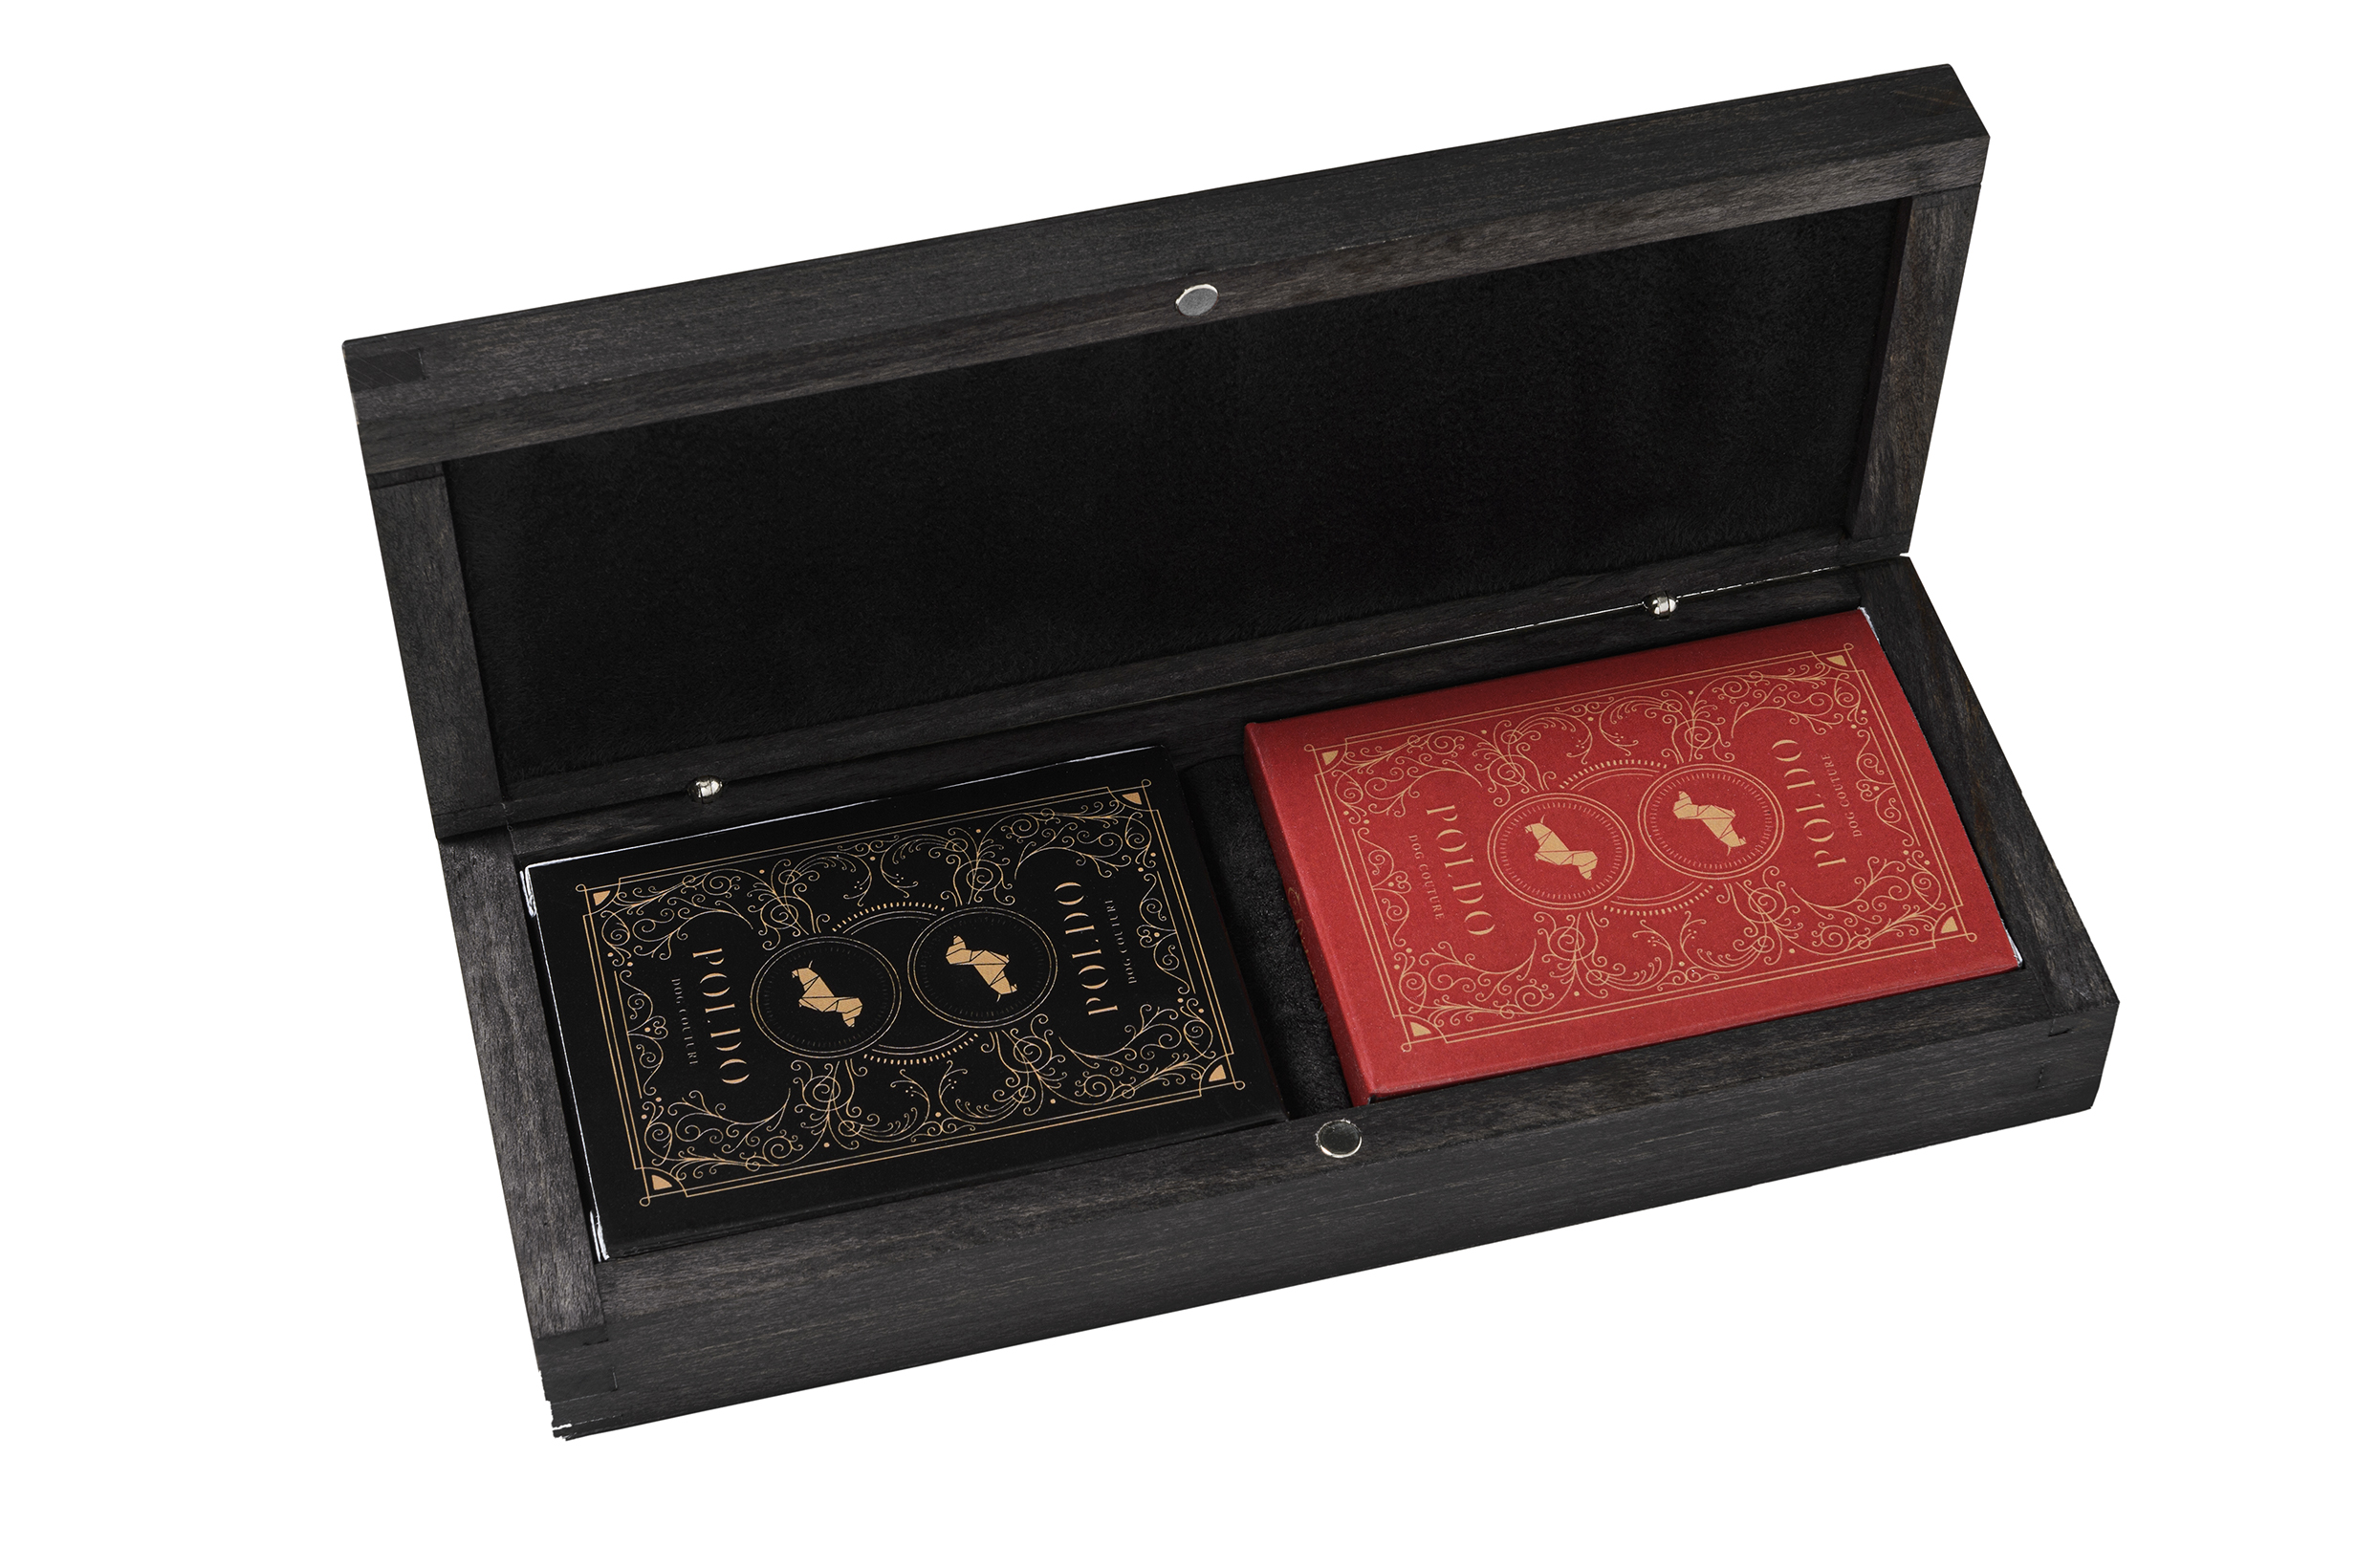 poldo dog couture playing cards set open